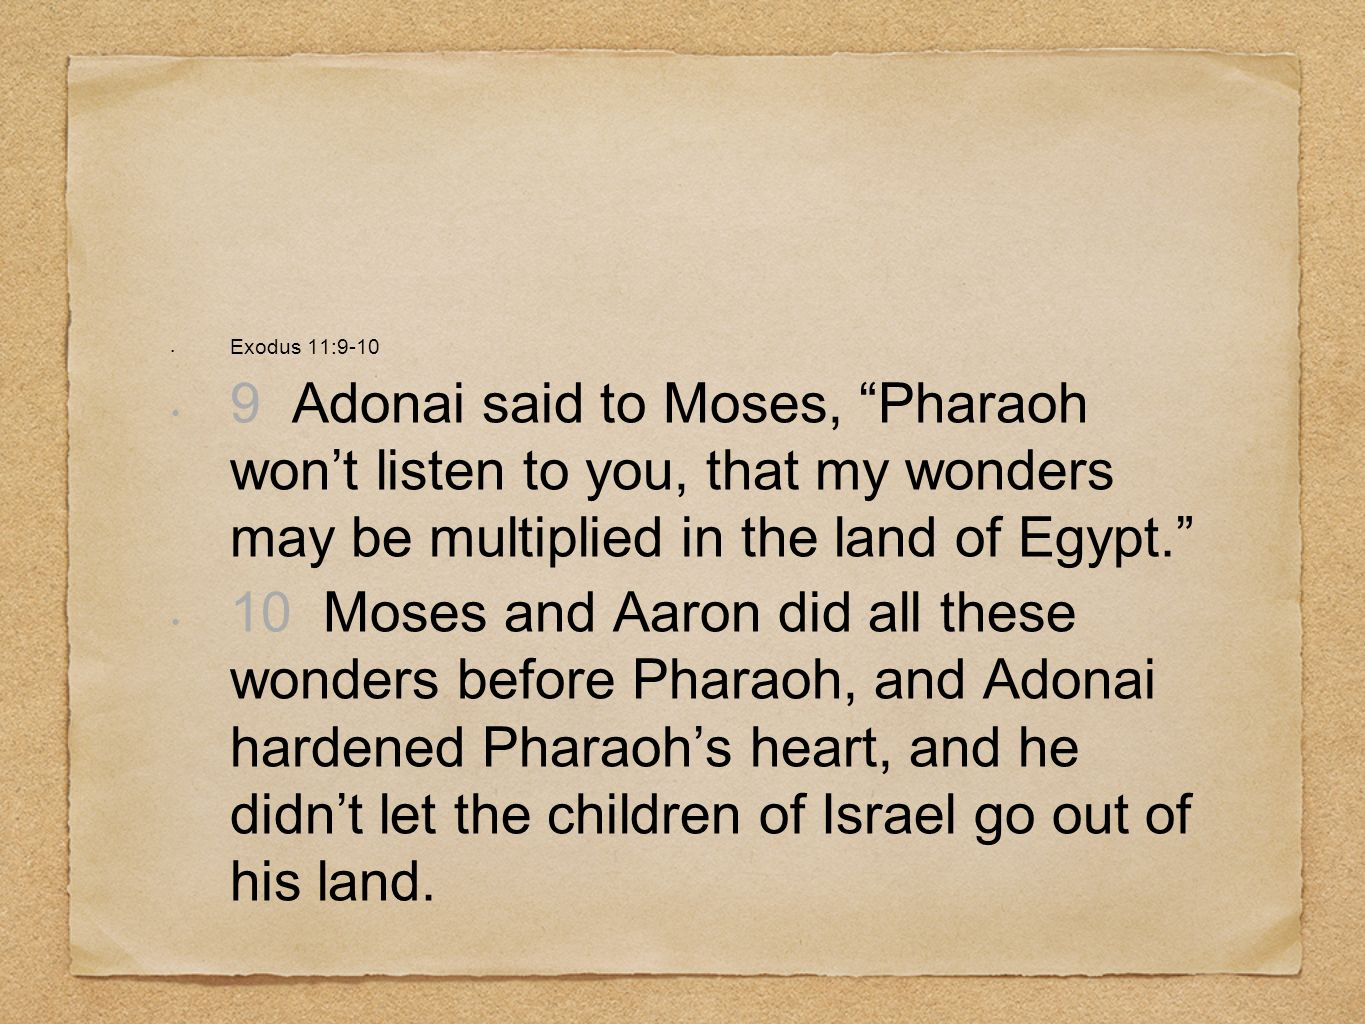 Exodus 11: Adonai said to Moses, Pharaoh won't listen to you, that my wonders may be multiplied in the land of Egypt.